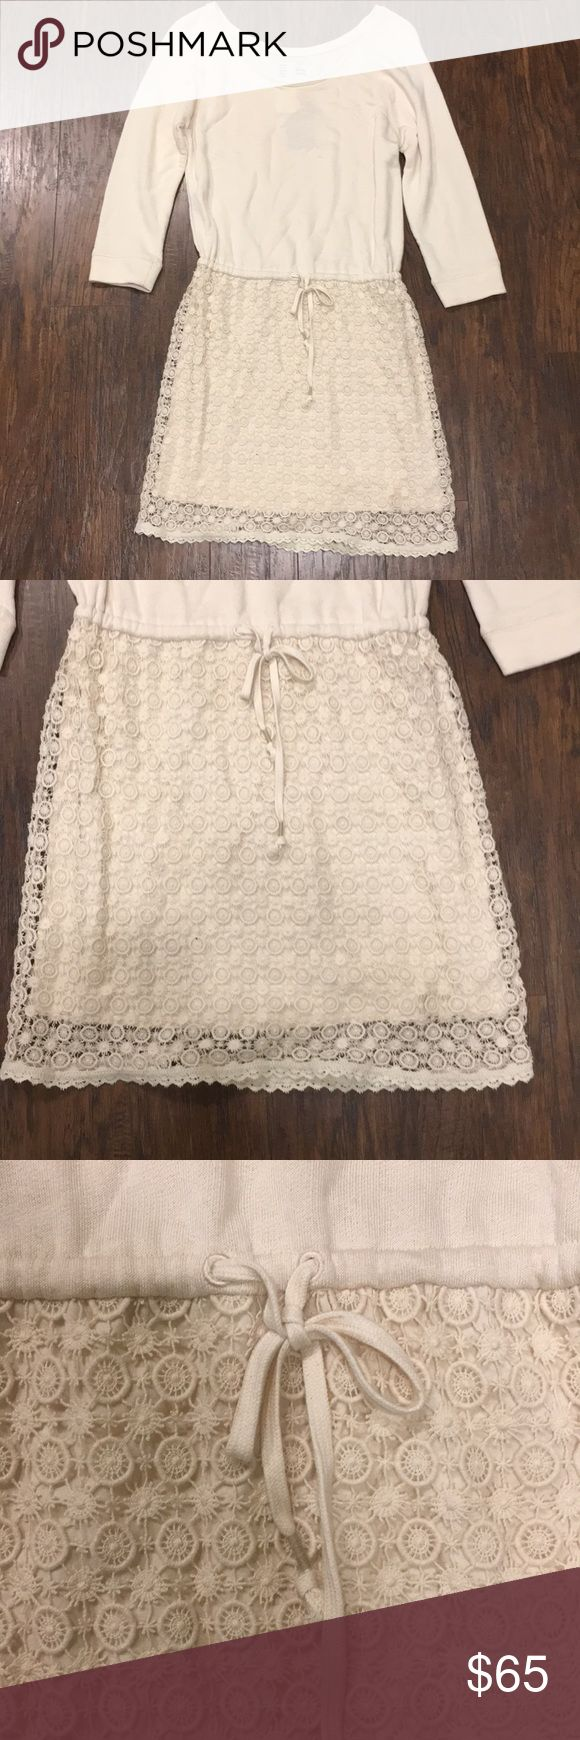 SALE NWT Anthropologie Saturday Sunday Dress NEW WITH TAGS Anthropologie Saturday Sunday cream dress. Gorgeous eyelet lace detailing on bottom half of the dress. Top half is soft jersey type material. Dress is lined in polyester. Drawstring waist. Size medium. Perfect for fall and winter! Anthropologie Dresses